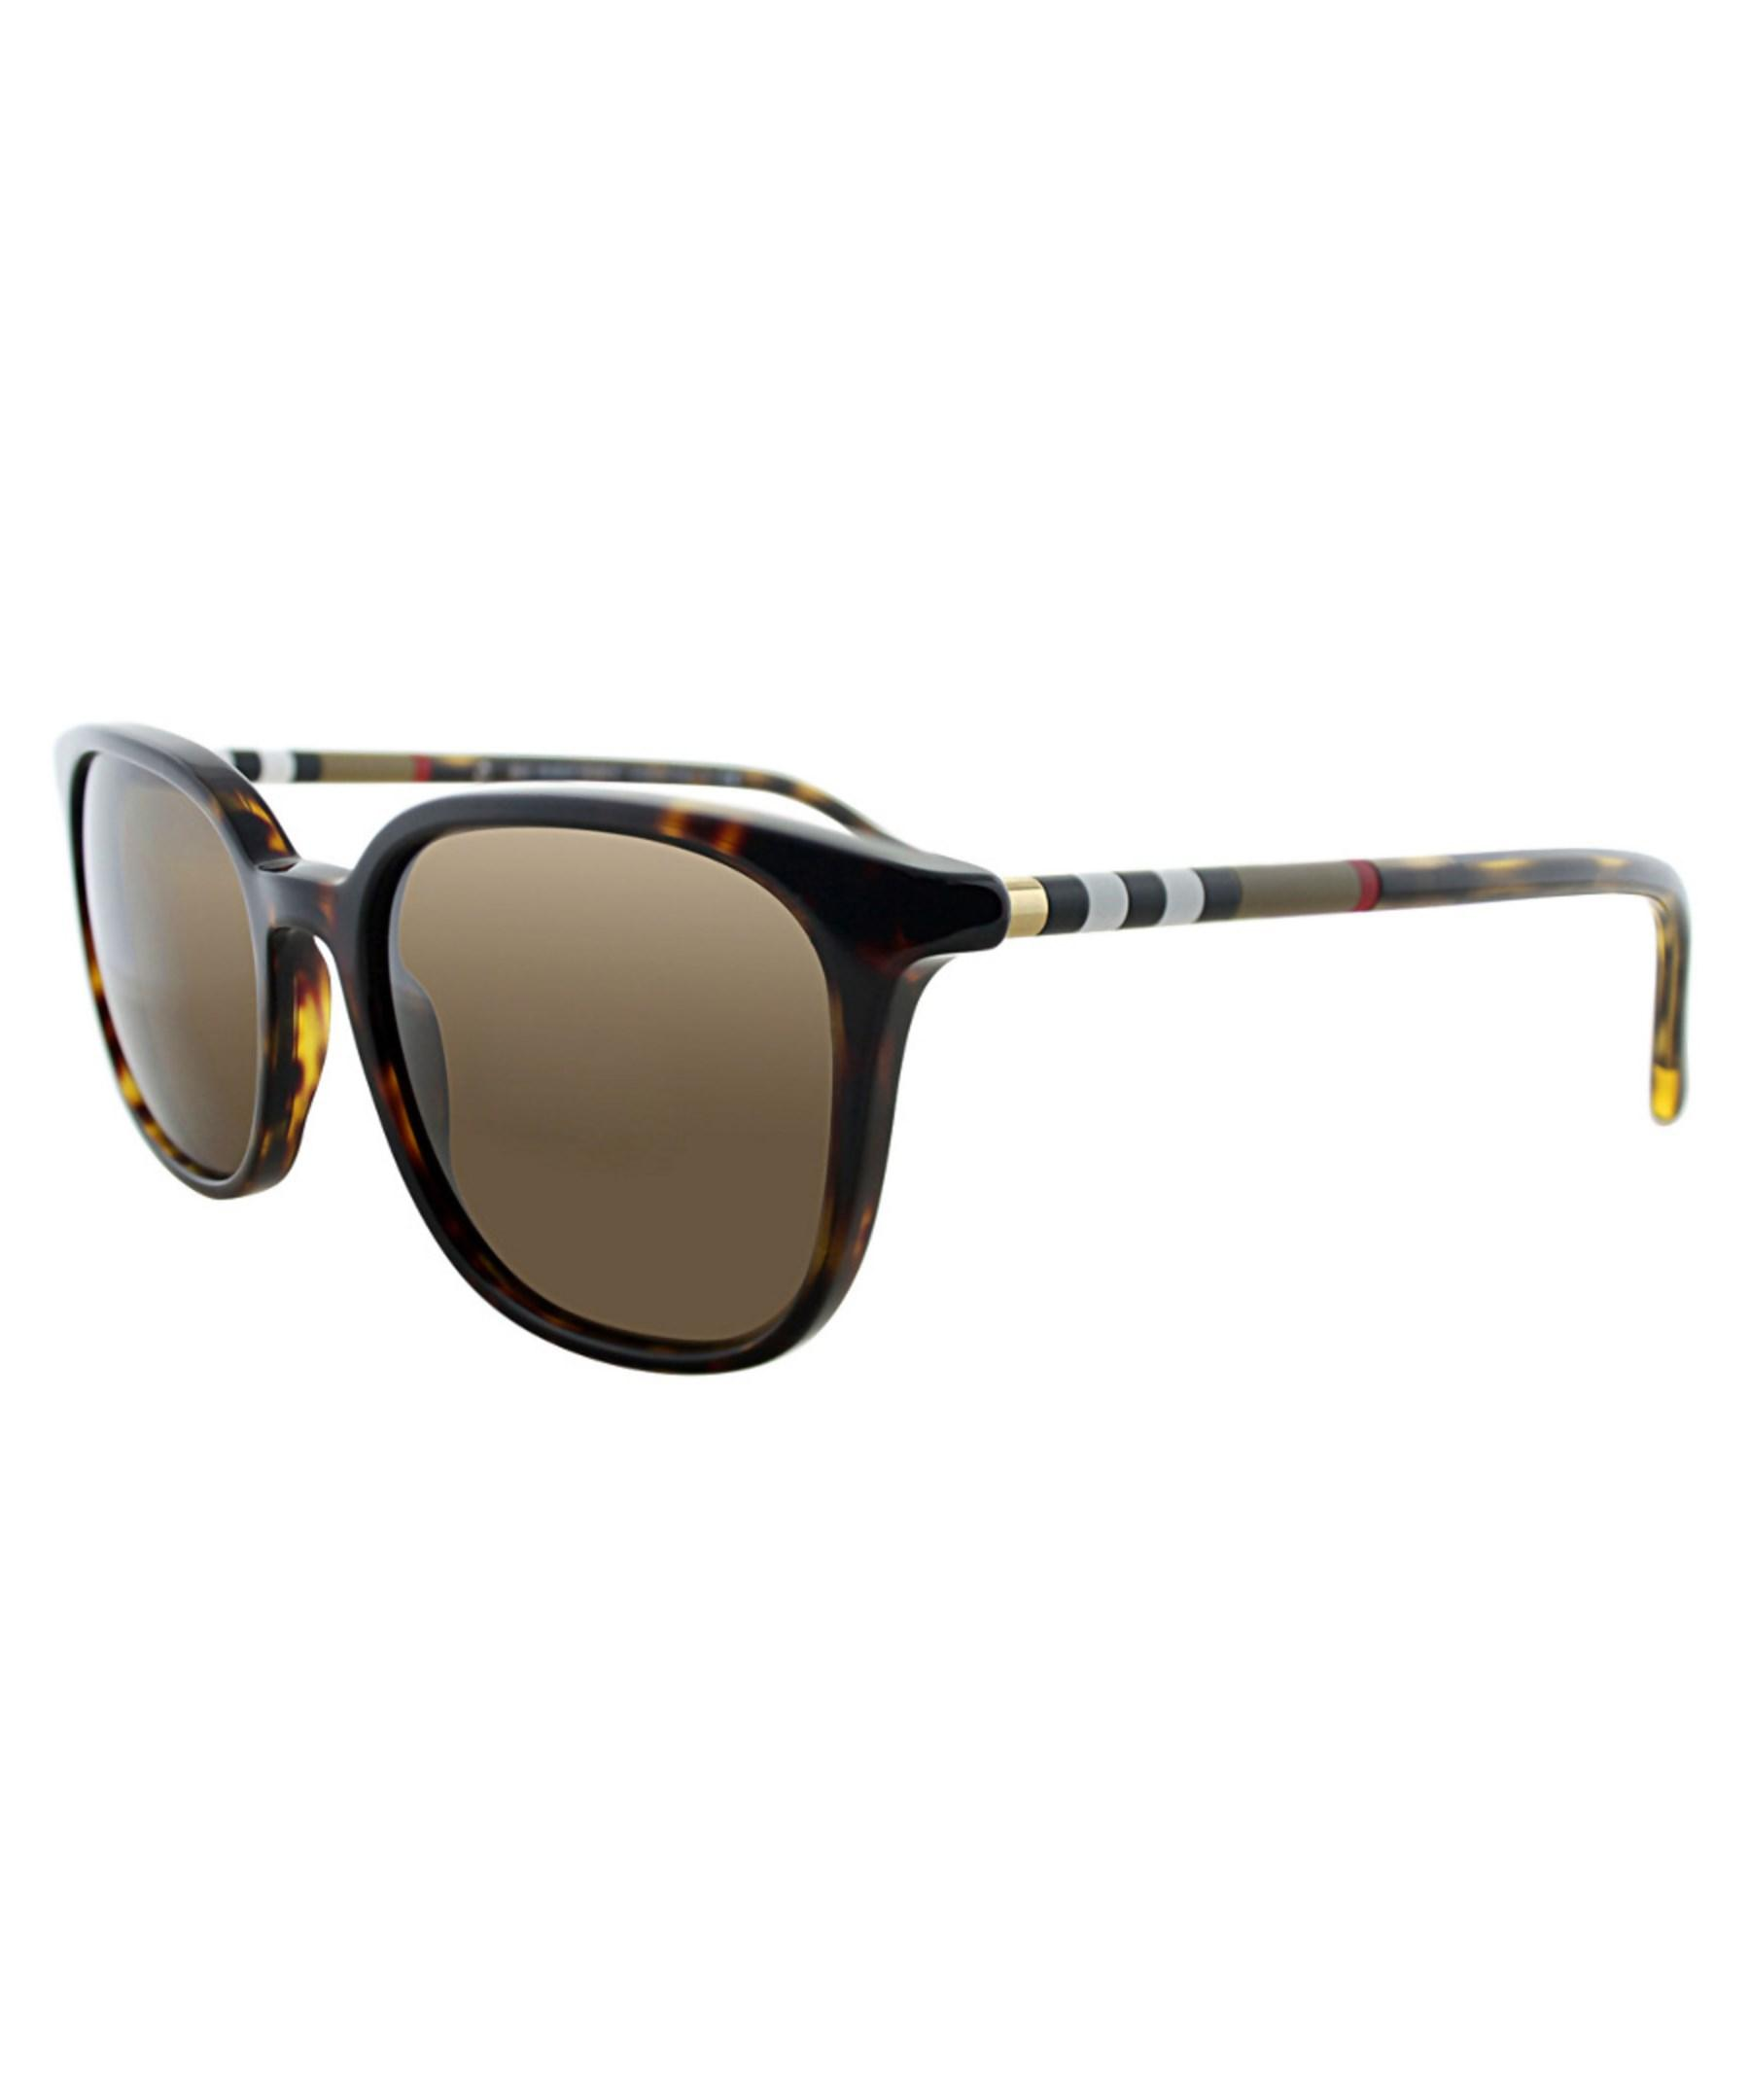 b239fe8afeb Lyst - Burberry Women s Be4144 Sunglasses in Brown